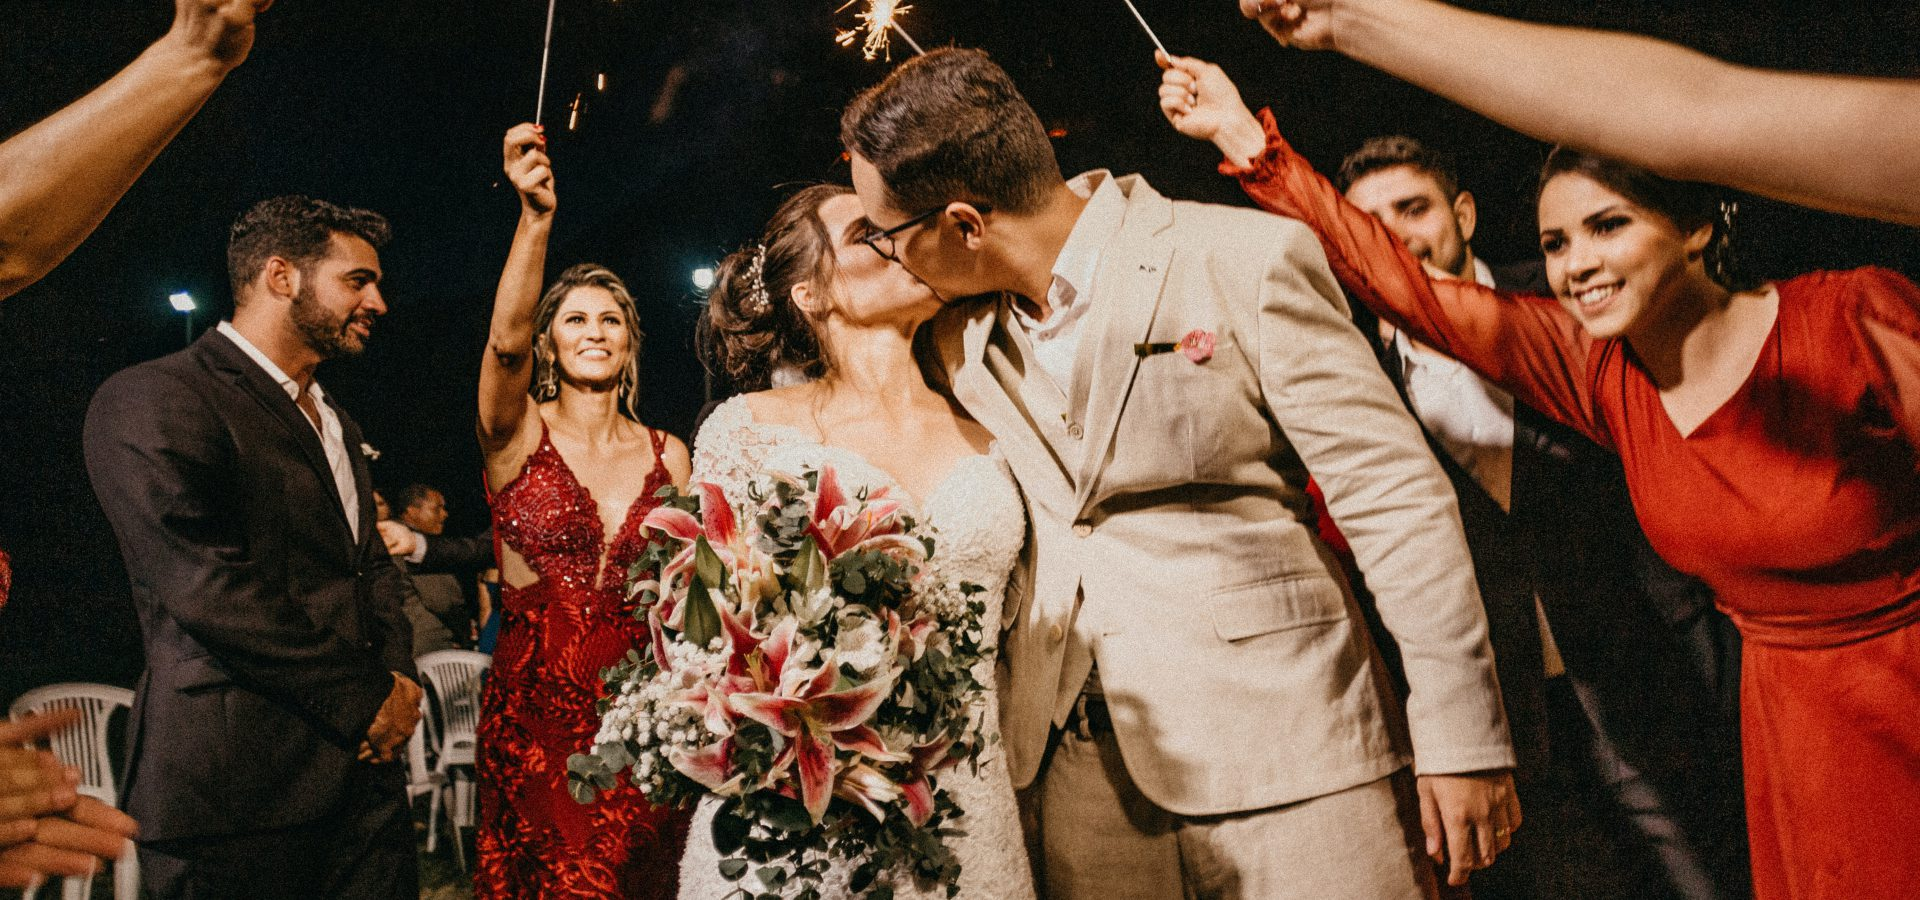 5 Tips To Save Money On Your Wedding